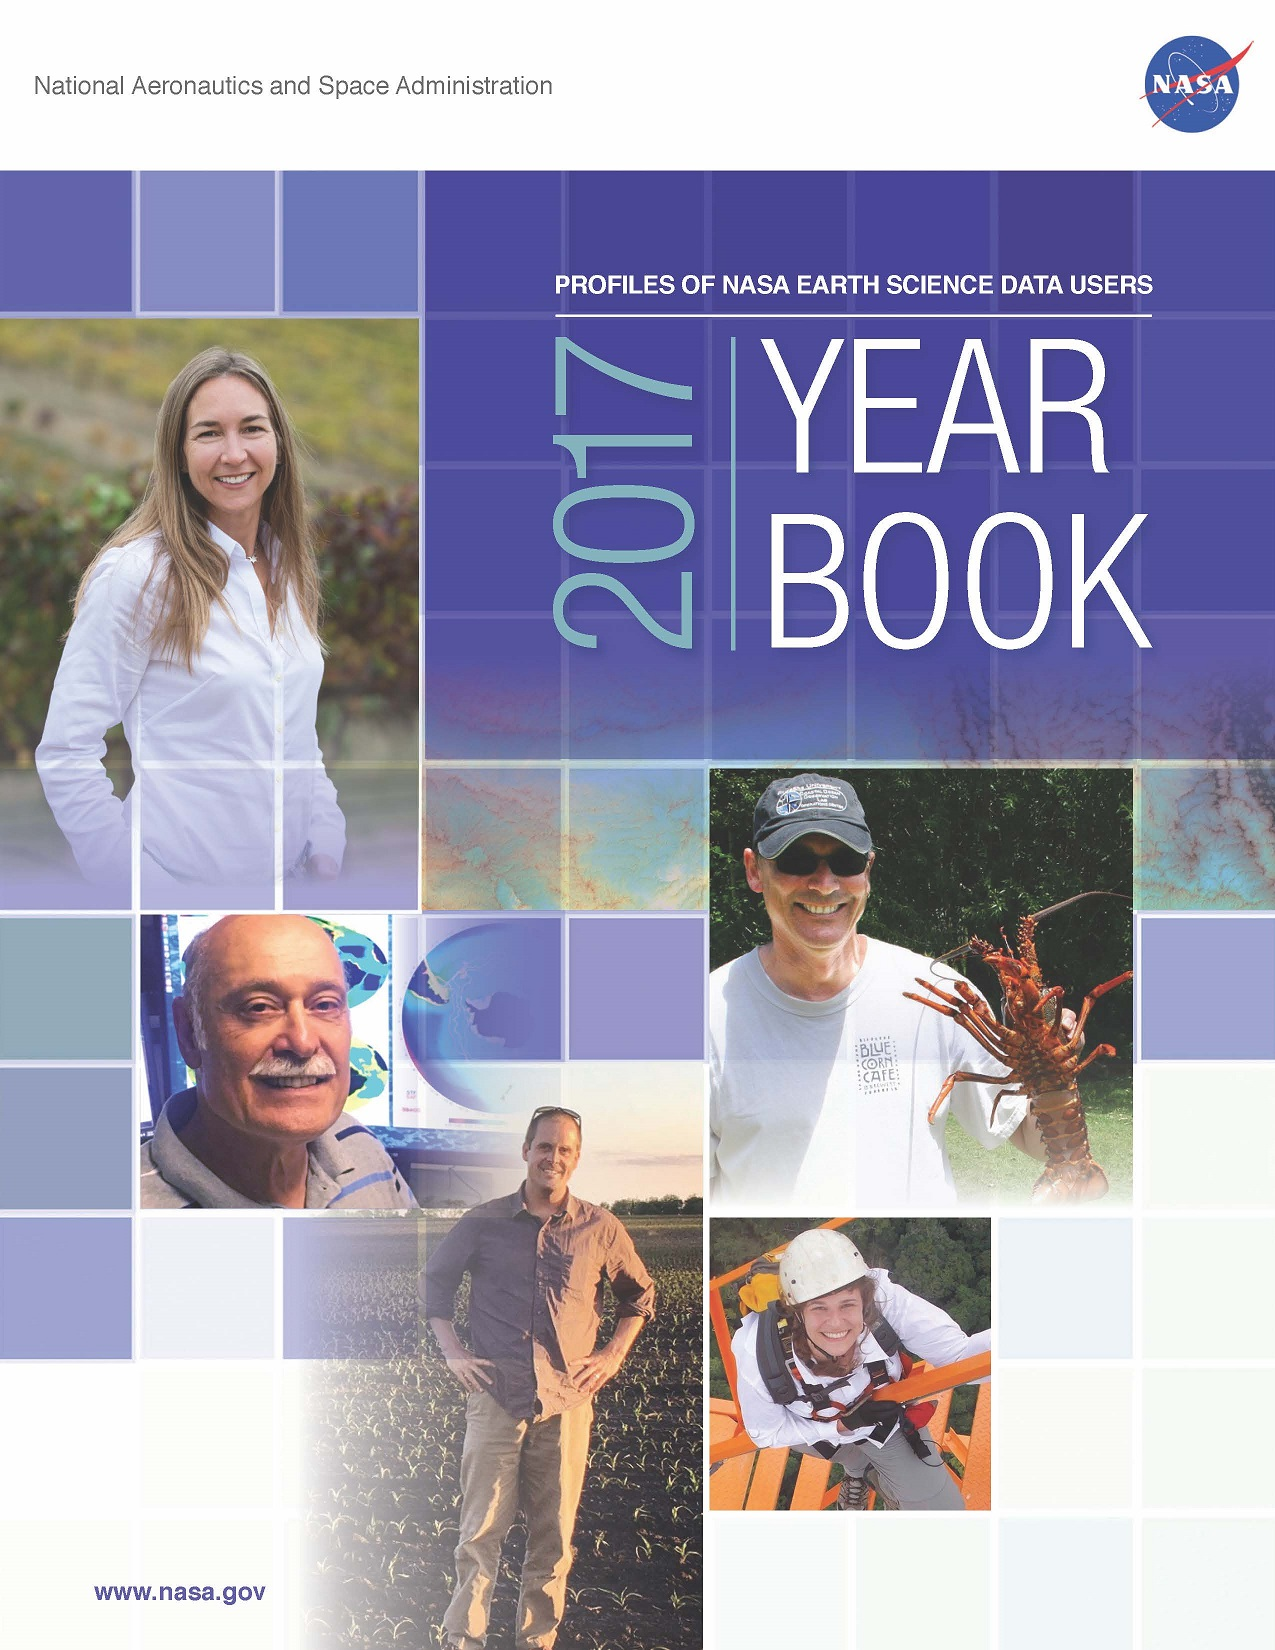 2017 User Profile Yearbook Cover Image